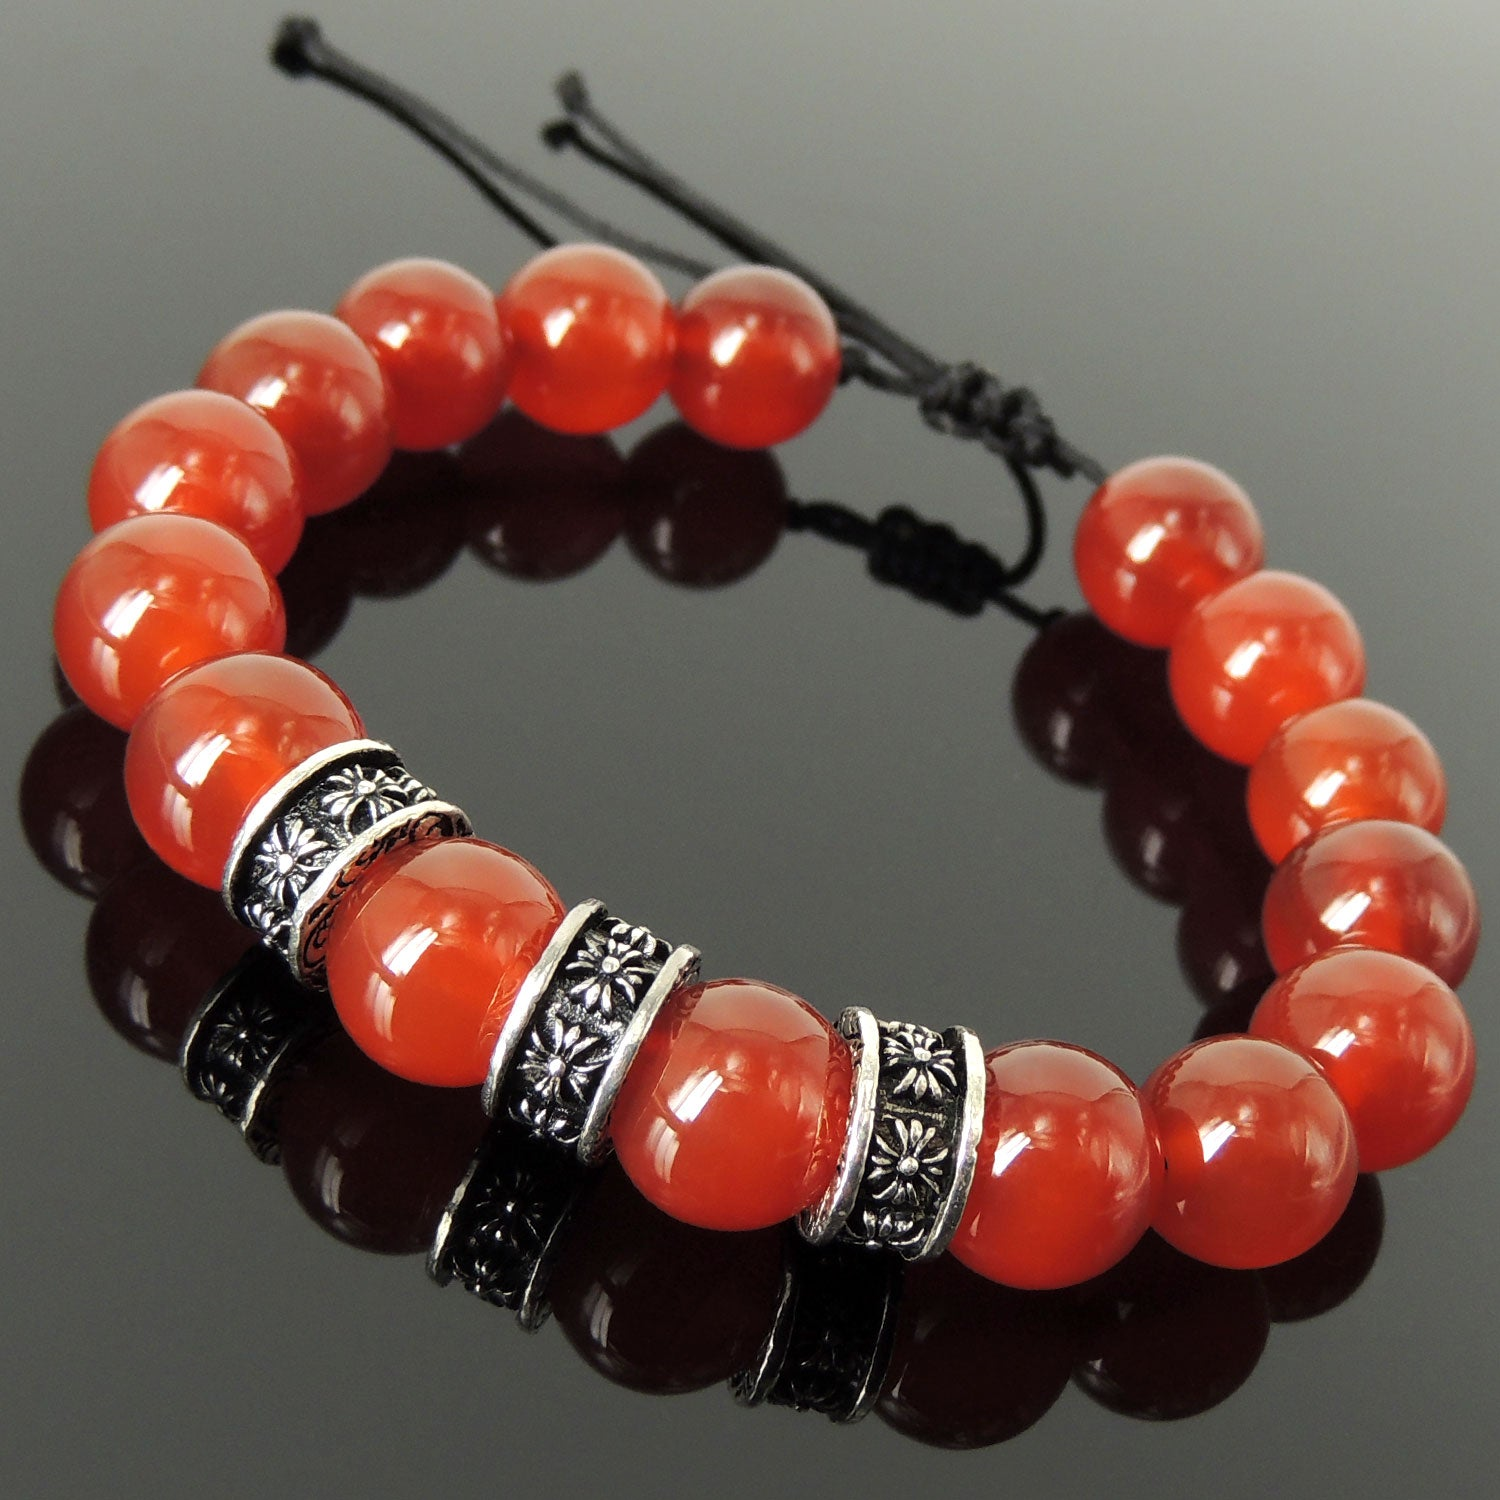 Bold Healing Gemstone Jewelry - Men's Women's Handmade Braided Charm Bracelet with 12mm Red Agate, Adjustable Drawstring, S925 Sterling Silver Cross Charms BR1773